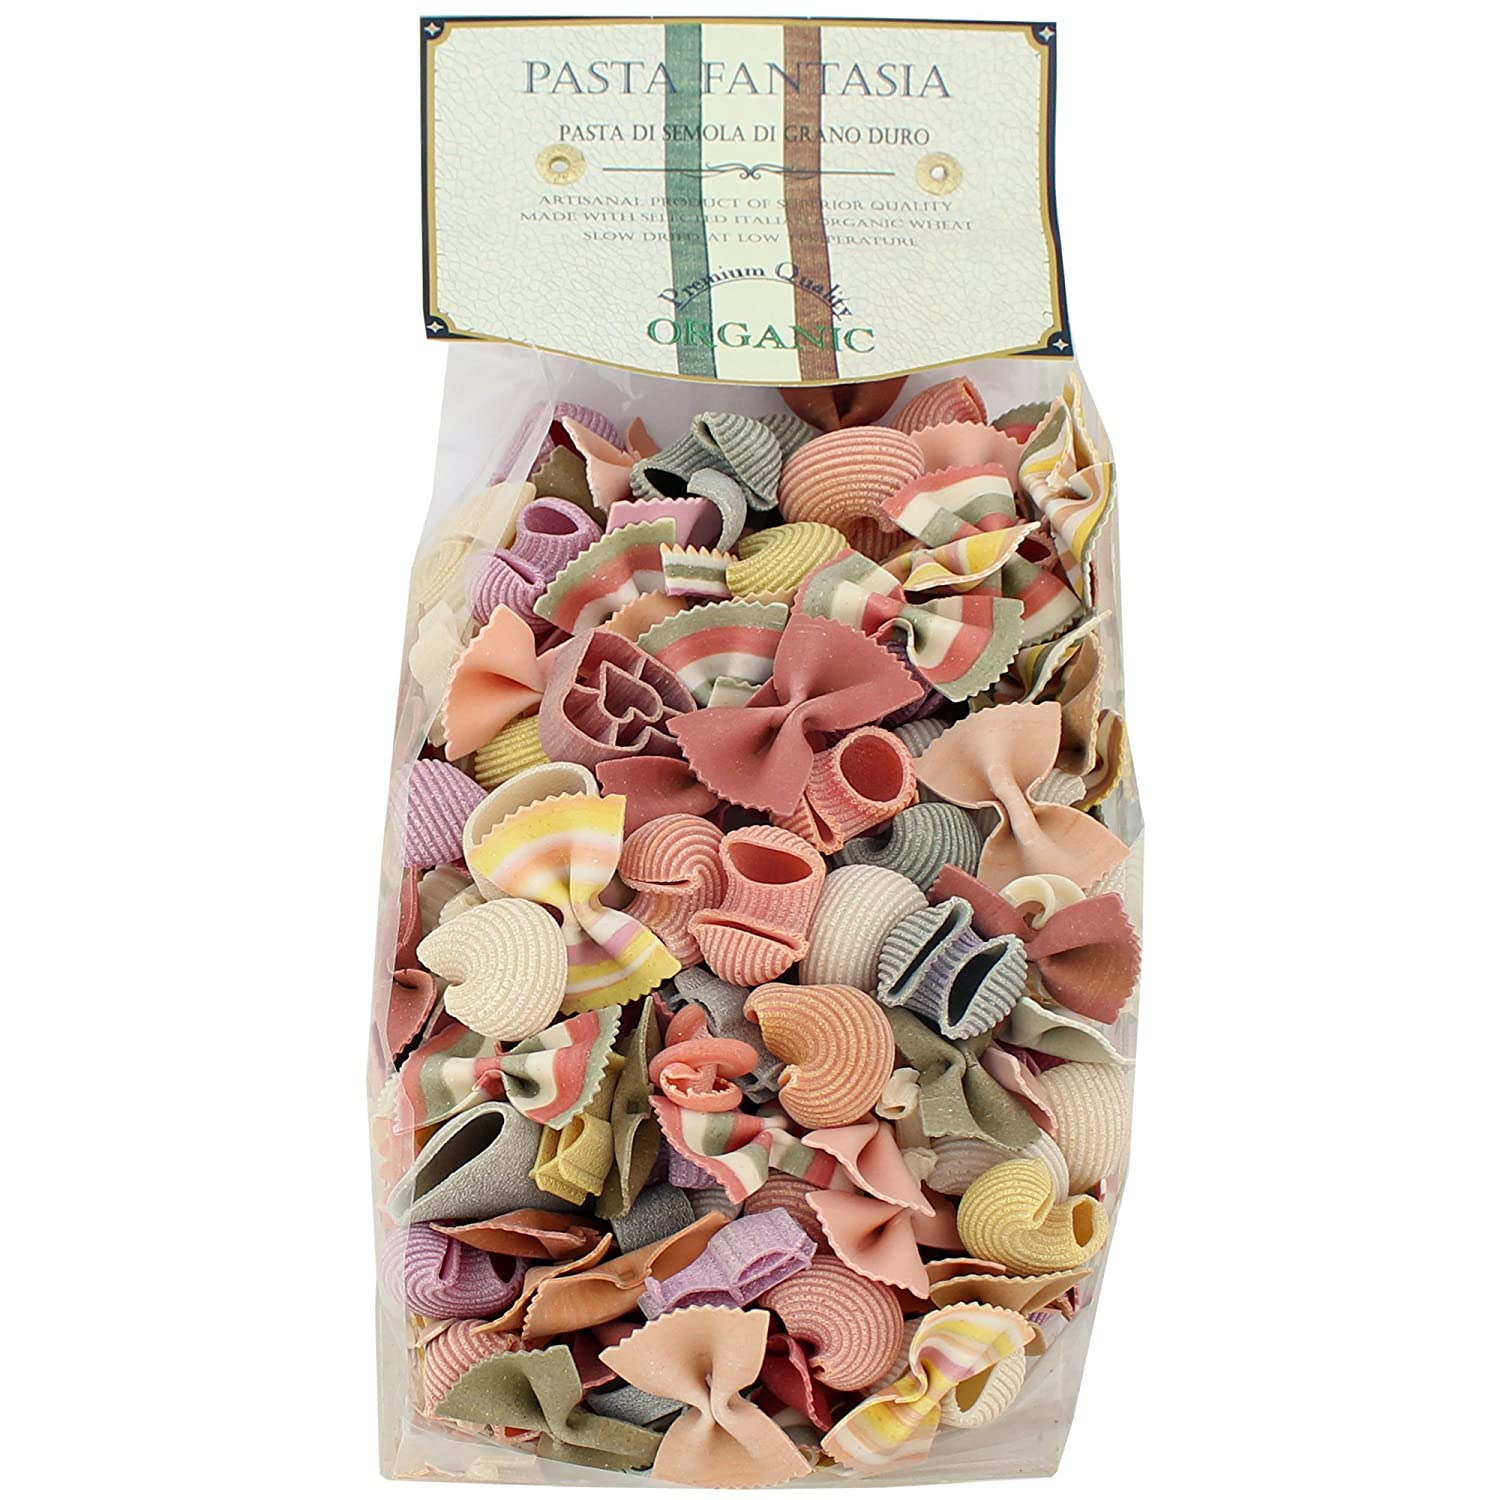 Italian Pasta Fantasia quality assurance All items free shipping Colored Monnezza Verdure Past Leftovers